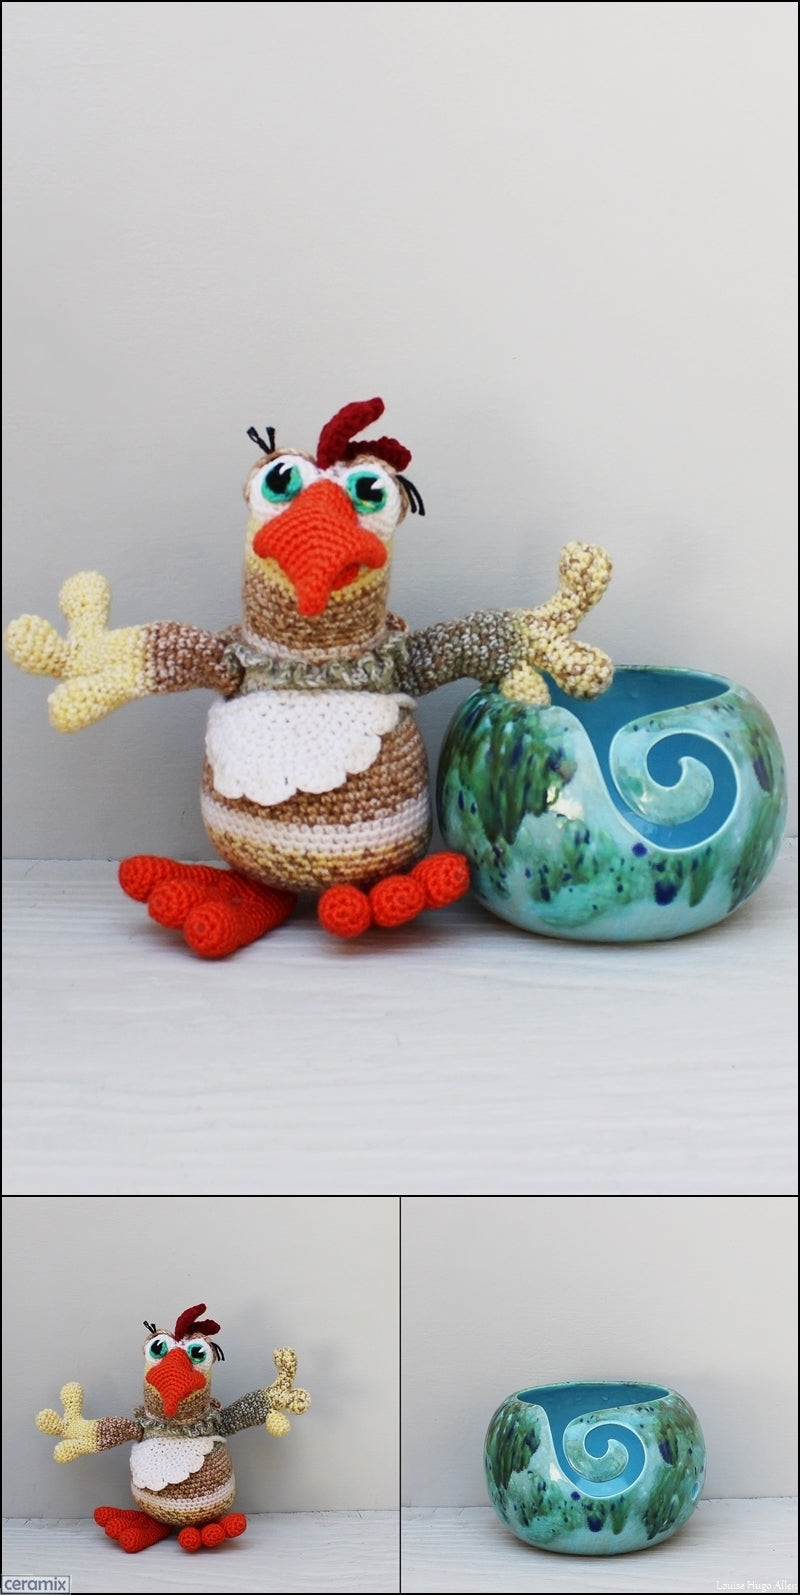 Cluck Chicken soft toy by Carlien McPhee and yarn Bowl by Ceramix